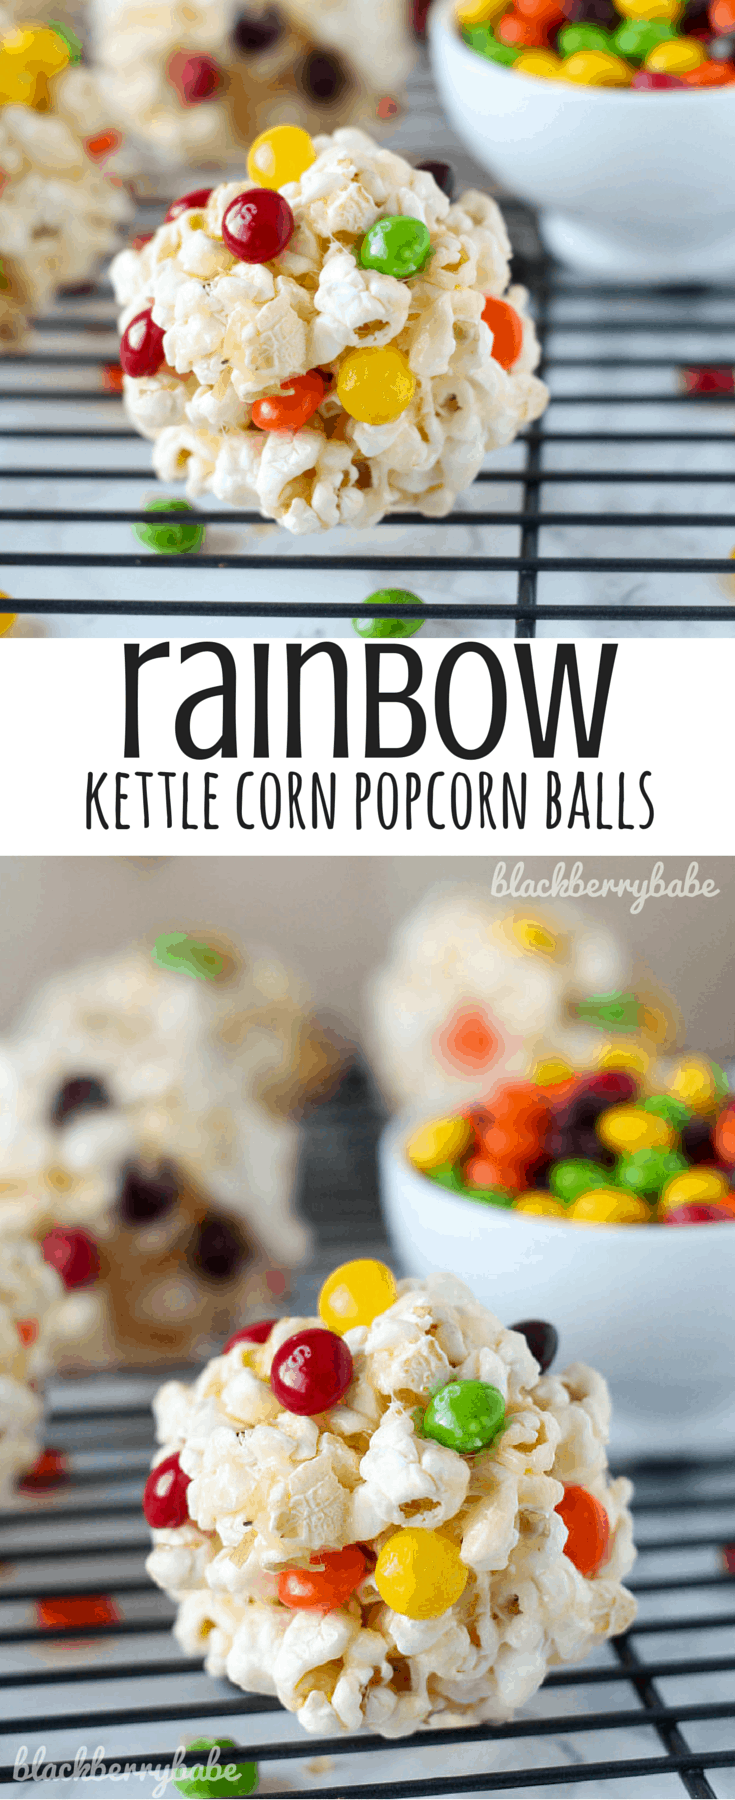 Rainbow Kettle Corn Popcorn Balls